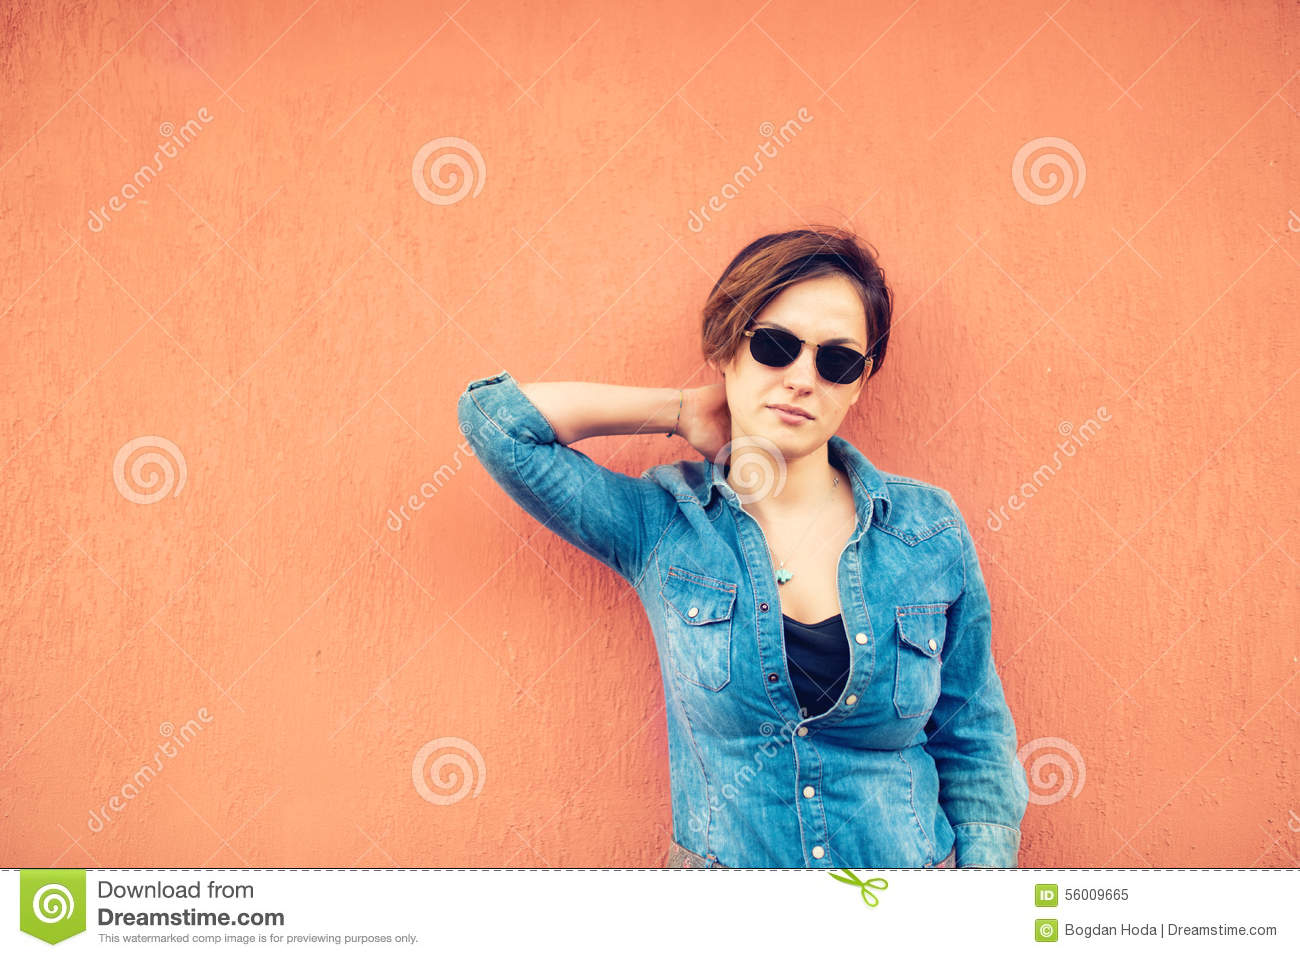 Hipster girl posing, against orange background on city streets. Urban lifestyle of contemporary world